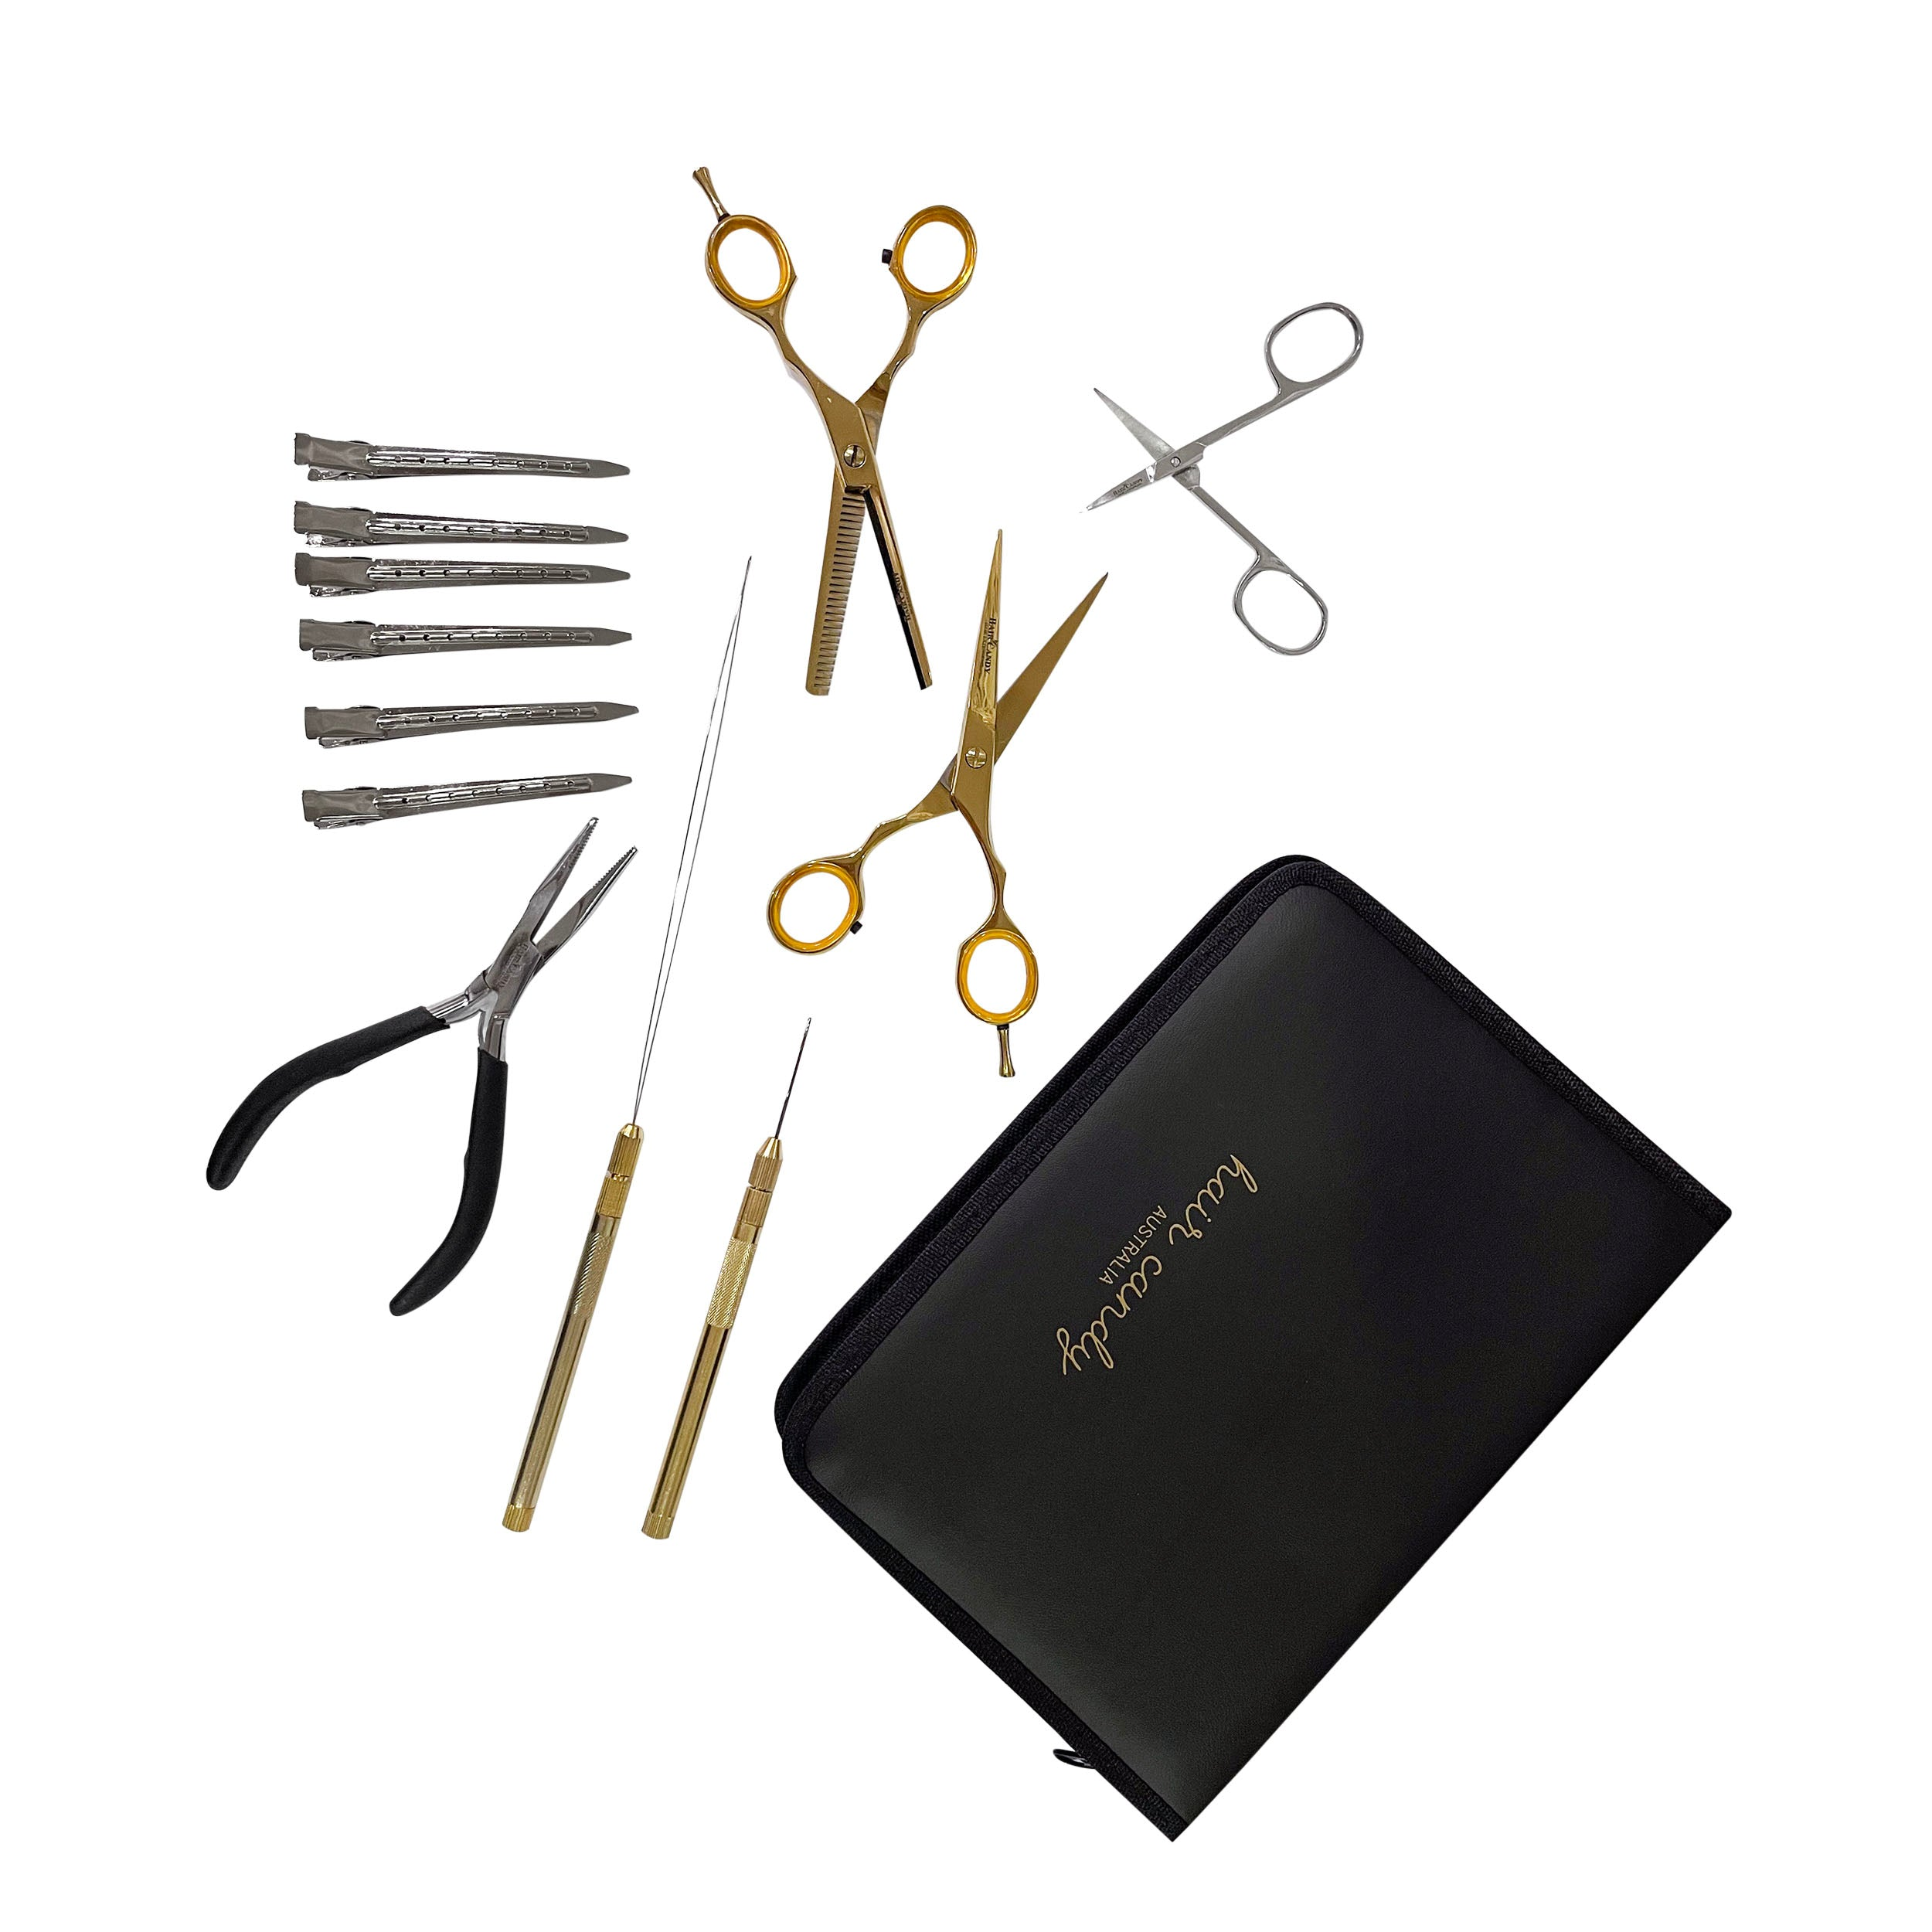 Deluxe Hair Candy Tool Kit - Vinyl Case